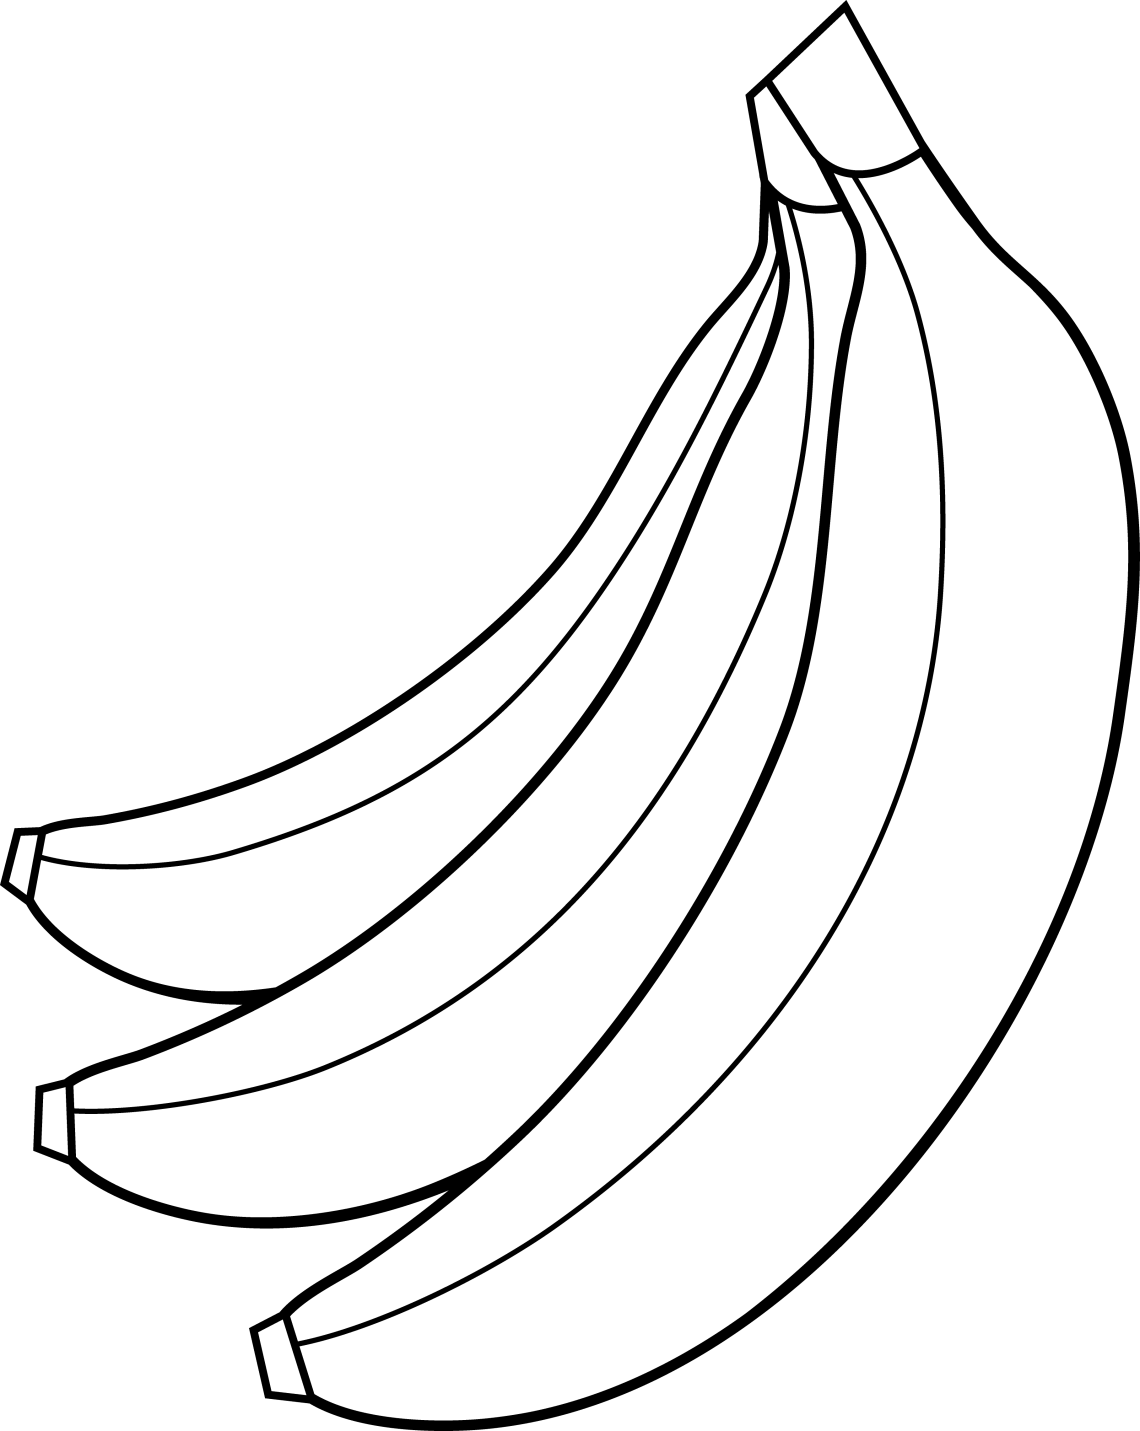 Animated Aesthetic Banana - banana-black-and-white-38_Download Animated Aesthetic Banana - banana-black-and-white-38  Best Photo Reference_378875.png